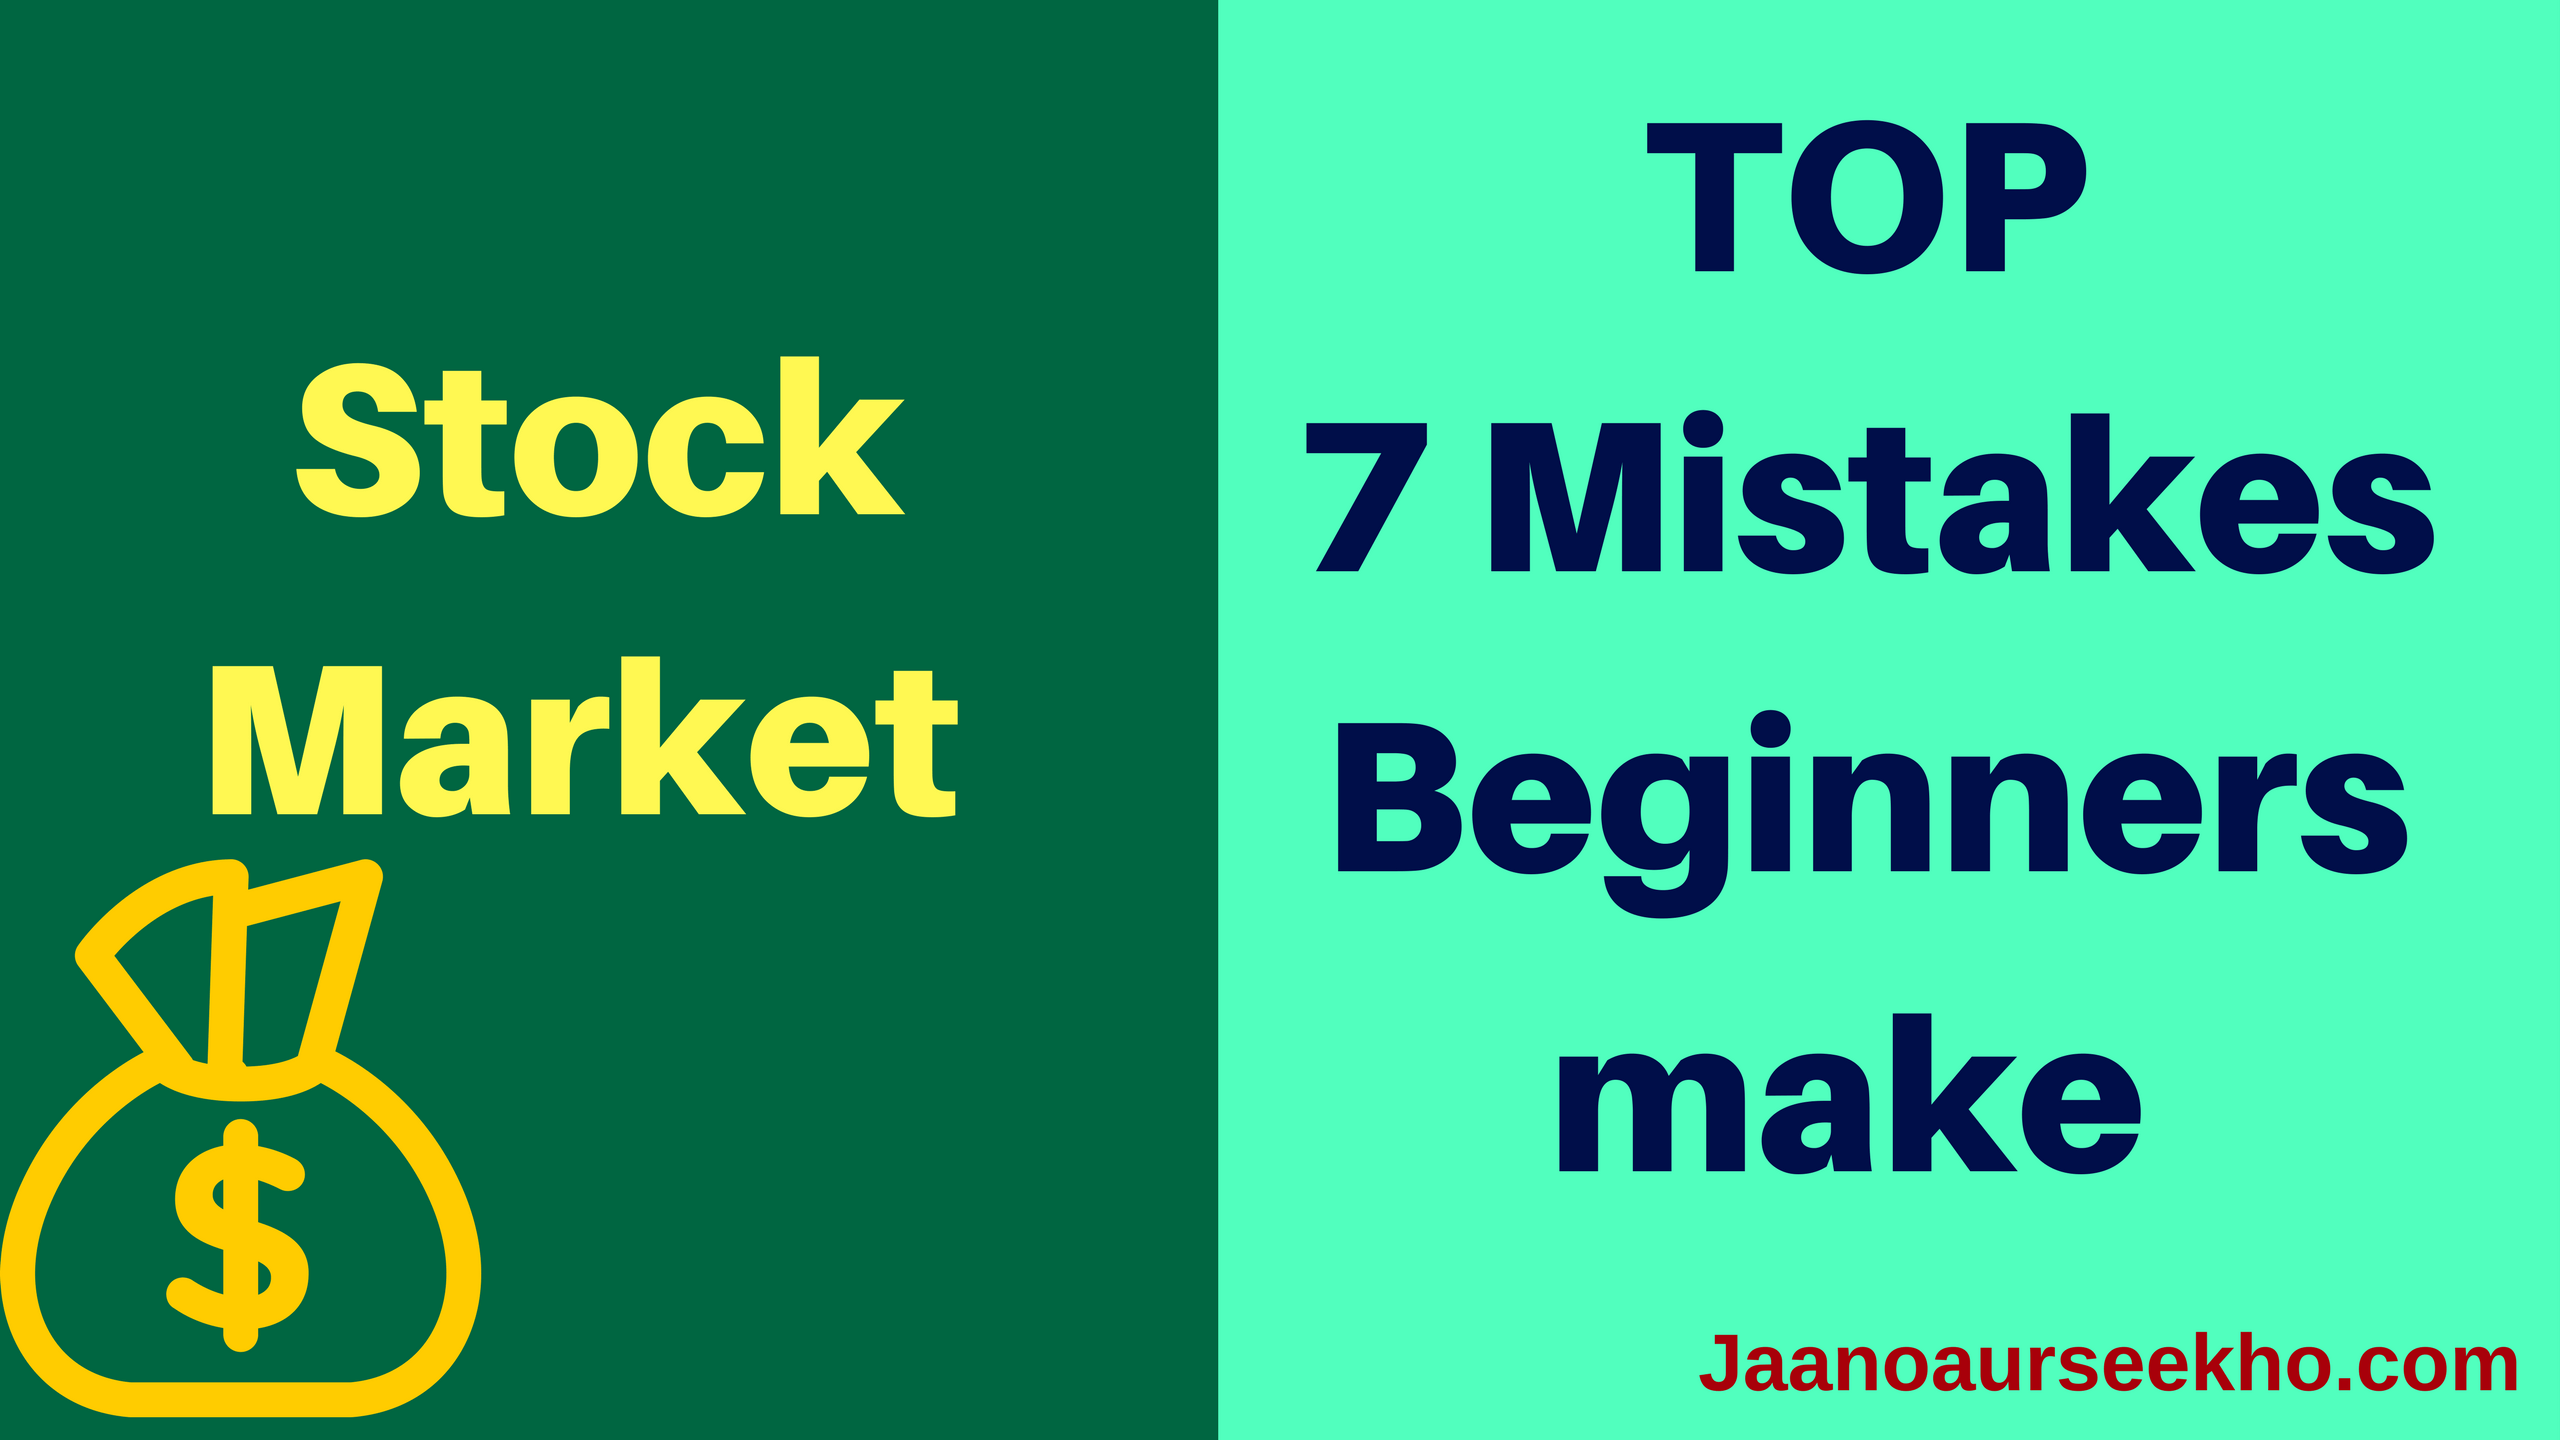 Top 7 Mistakes  Beginners make in Stock Market !